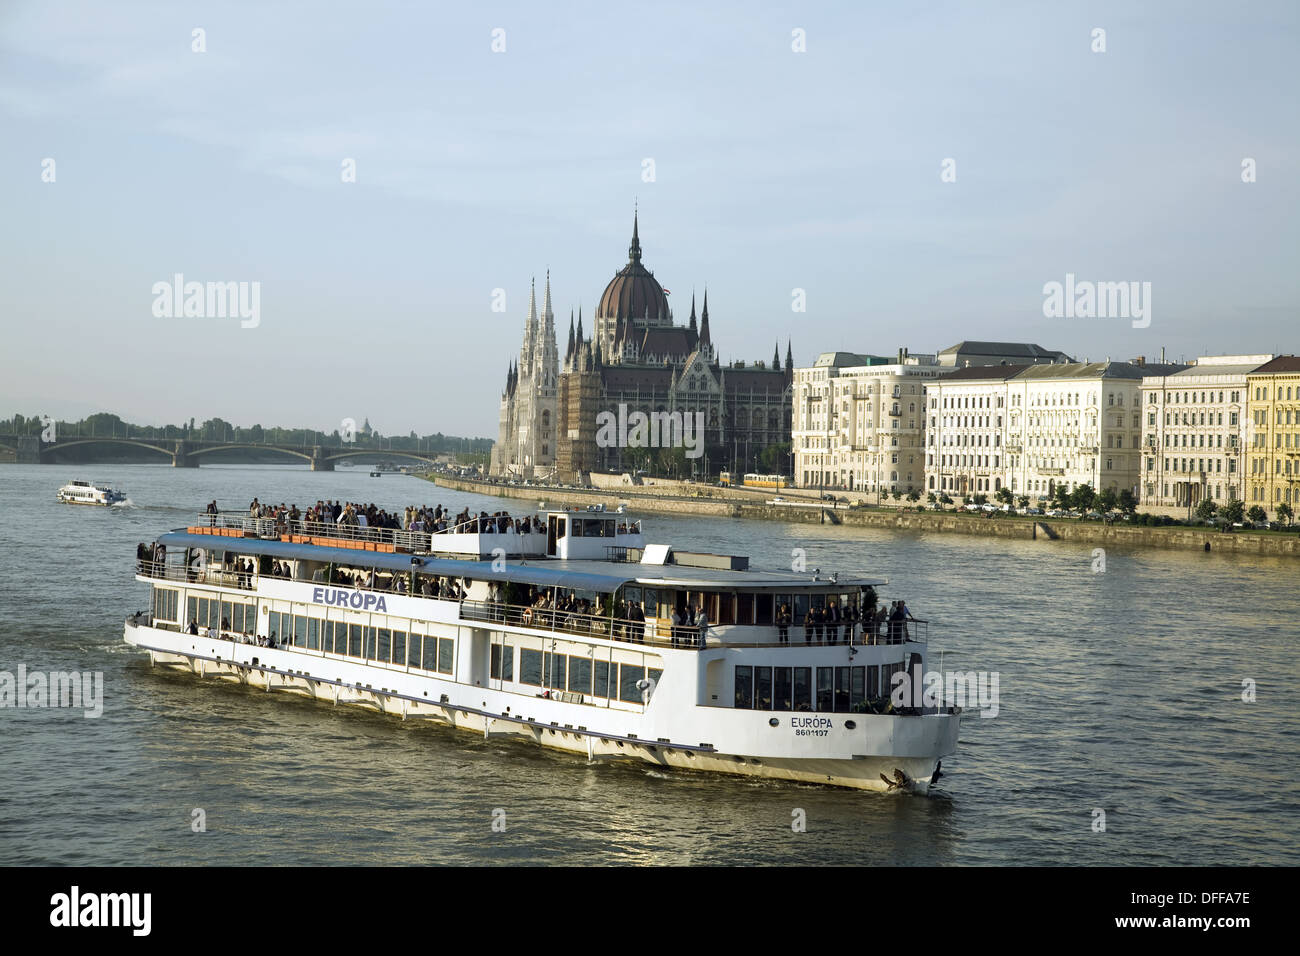 Passenger boat sailing down the Danube River with the